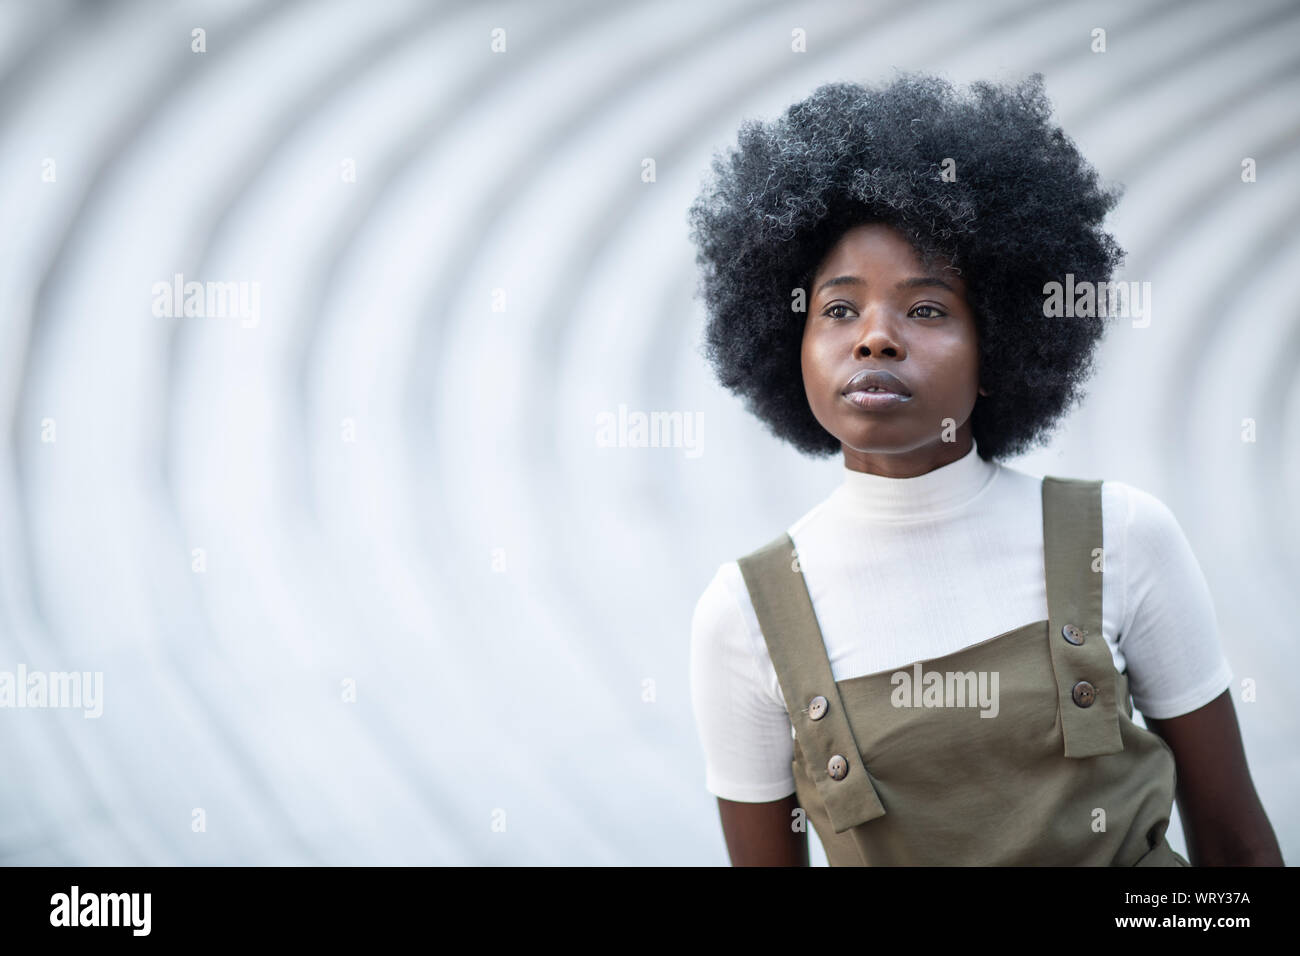 Young and beautiful black girl on an urban landscape, creative artistic photo Stock Photo